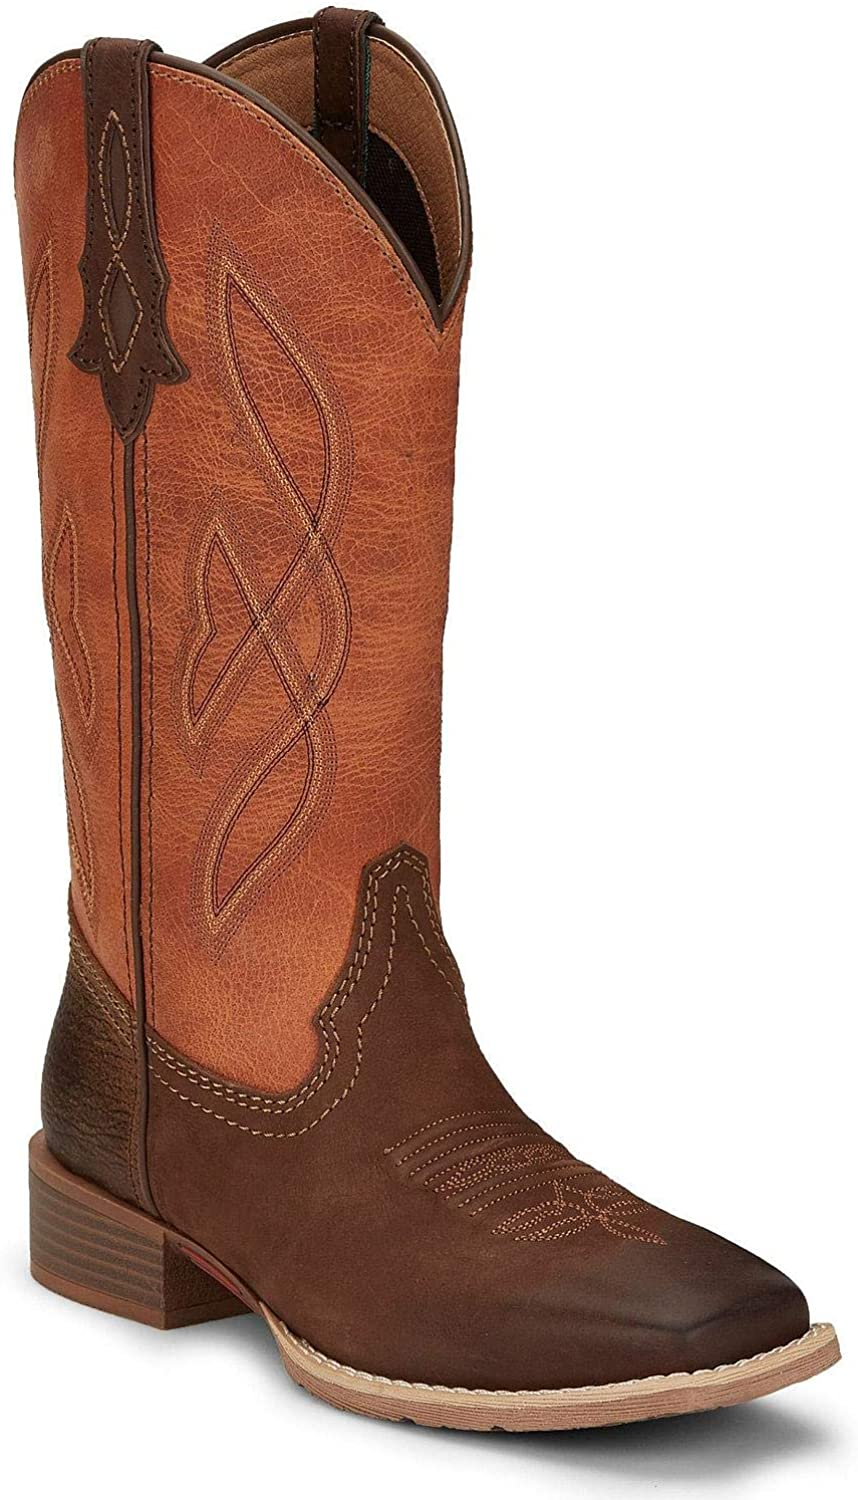 Justin Women's lowest price Breakaway Moka Our shop most popular Western Boot 7 Toe Wide Square Tan